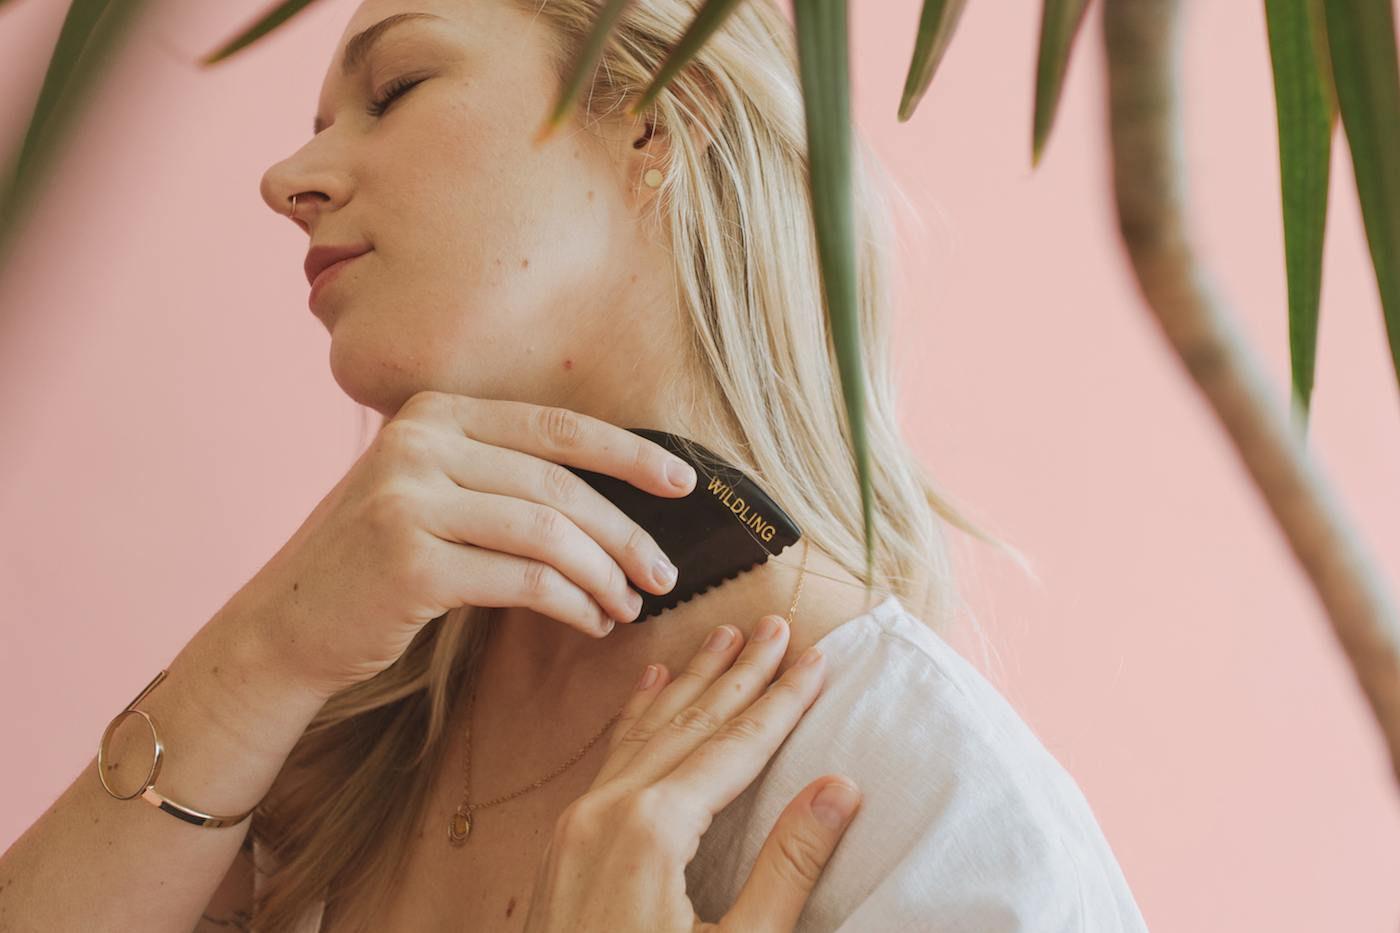 Thumbnail for Gua Sha Could Be the Answer to Treating (and Preventing!) Those Pesky Blackheads